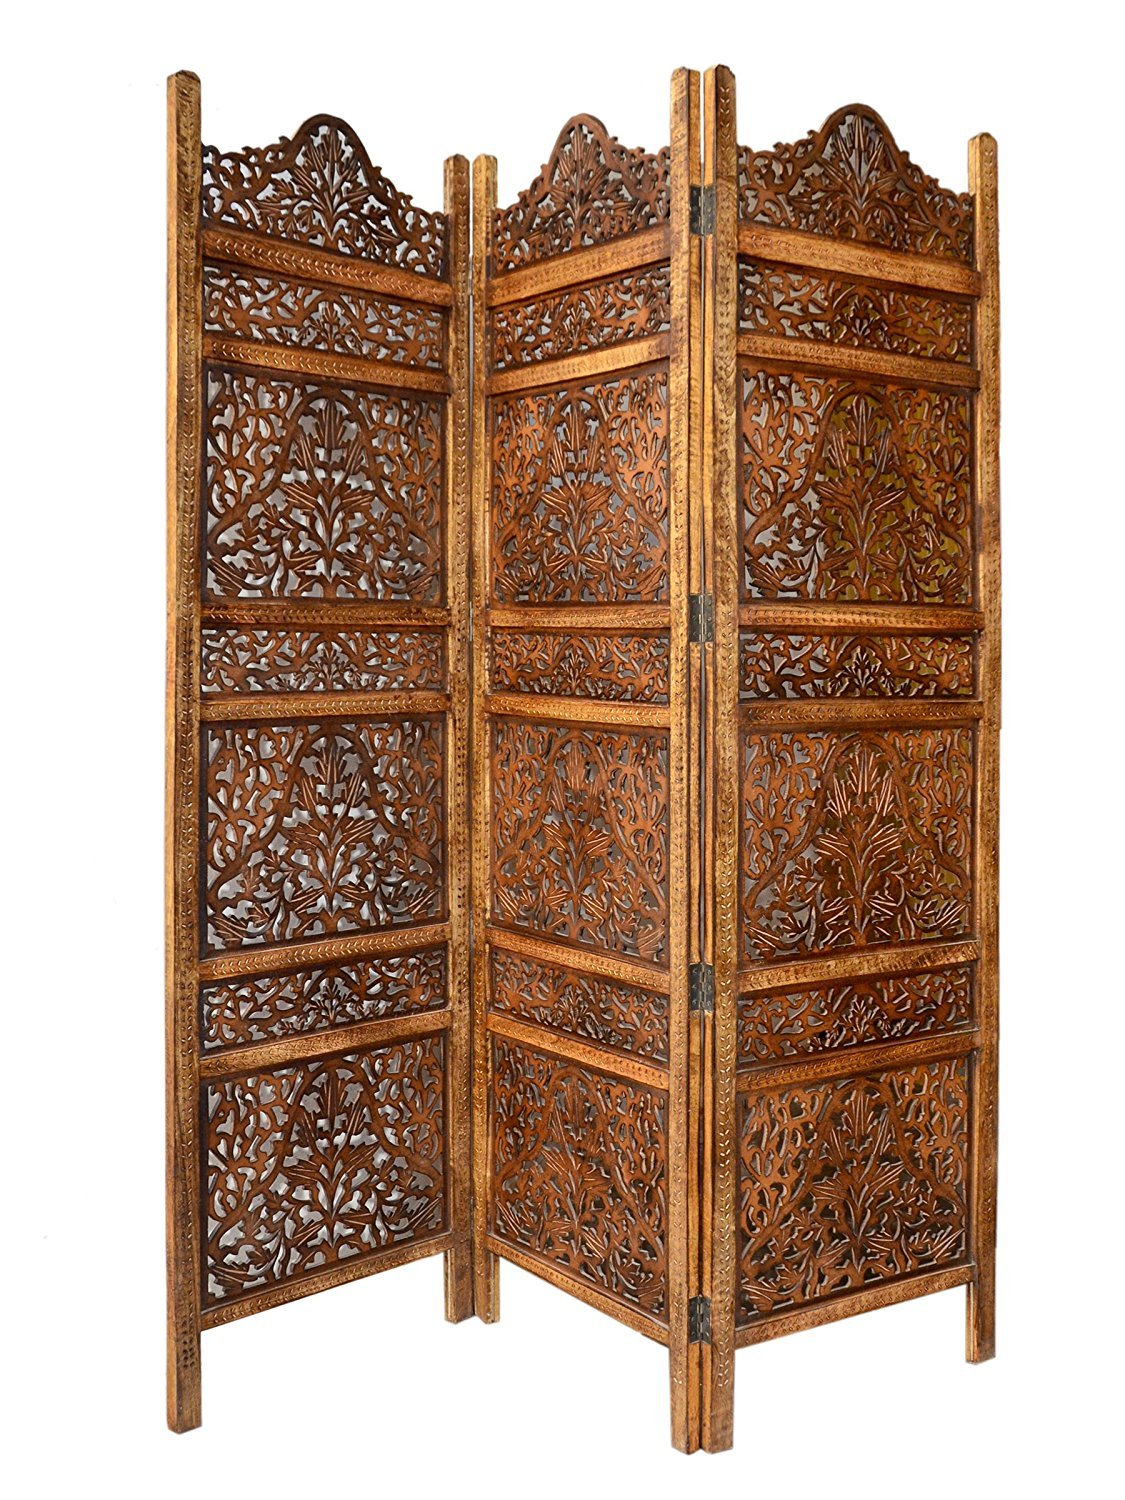 Artesia Wooden 3 Panel Carving Room Divider Wooden Partition by Artesia